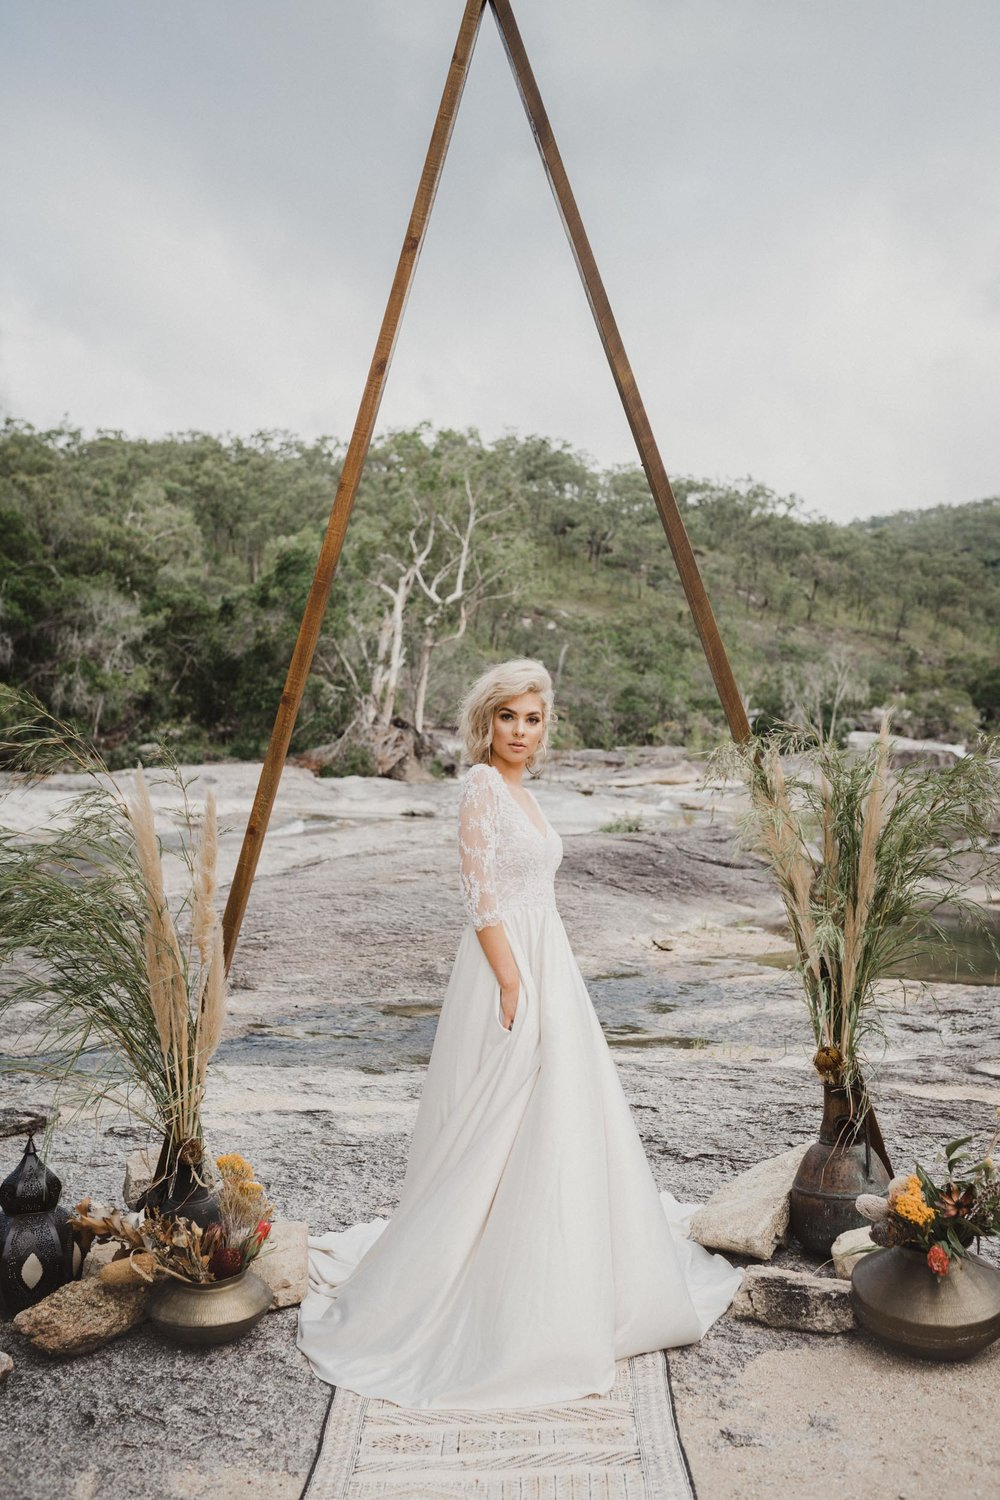 The Raw Photographer - Cairns Wedding Photographer - Brides Styled Shoot - Dress Jonovia Bridal - Hair Makeup Ideas-12.jpg